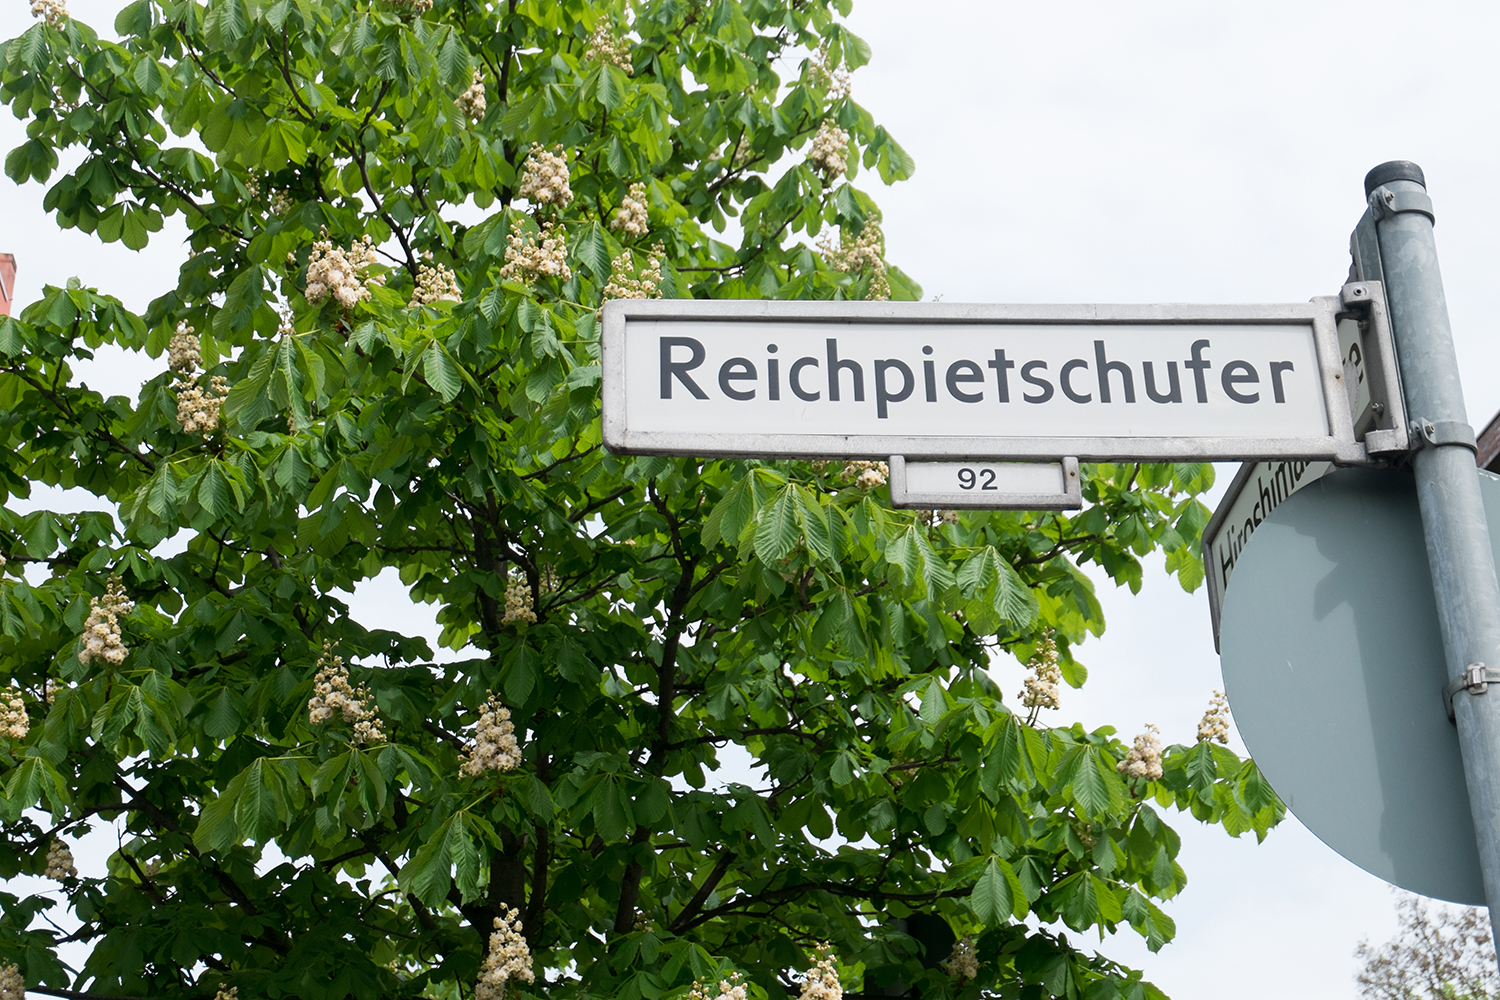 Street sign saying 'Reichpietschufer' in front of a chestnut tree